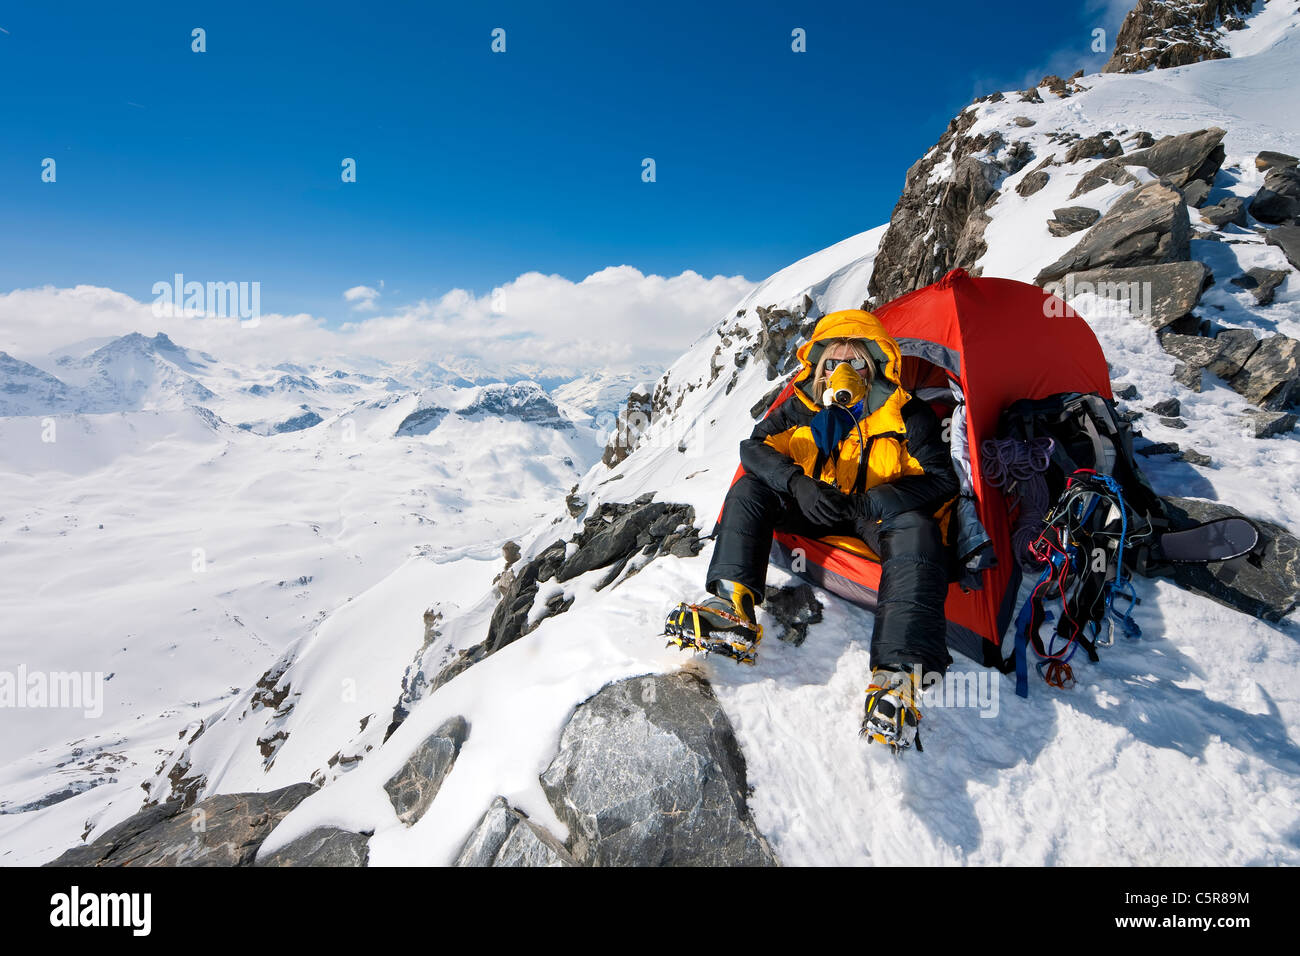 A climber in tent at very high altitude with oxygen breathing appartus. - Stock Image